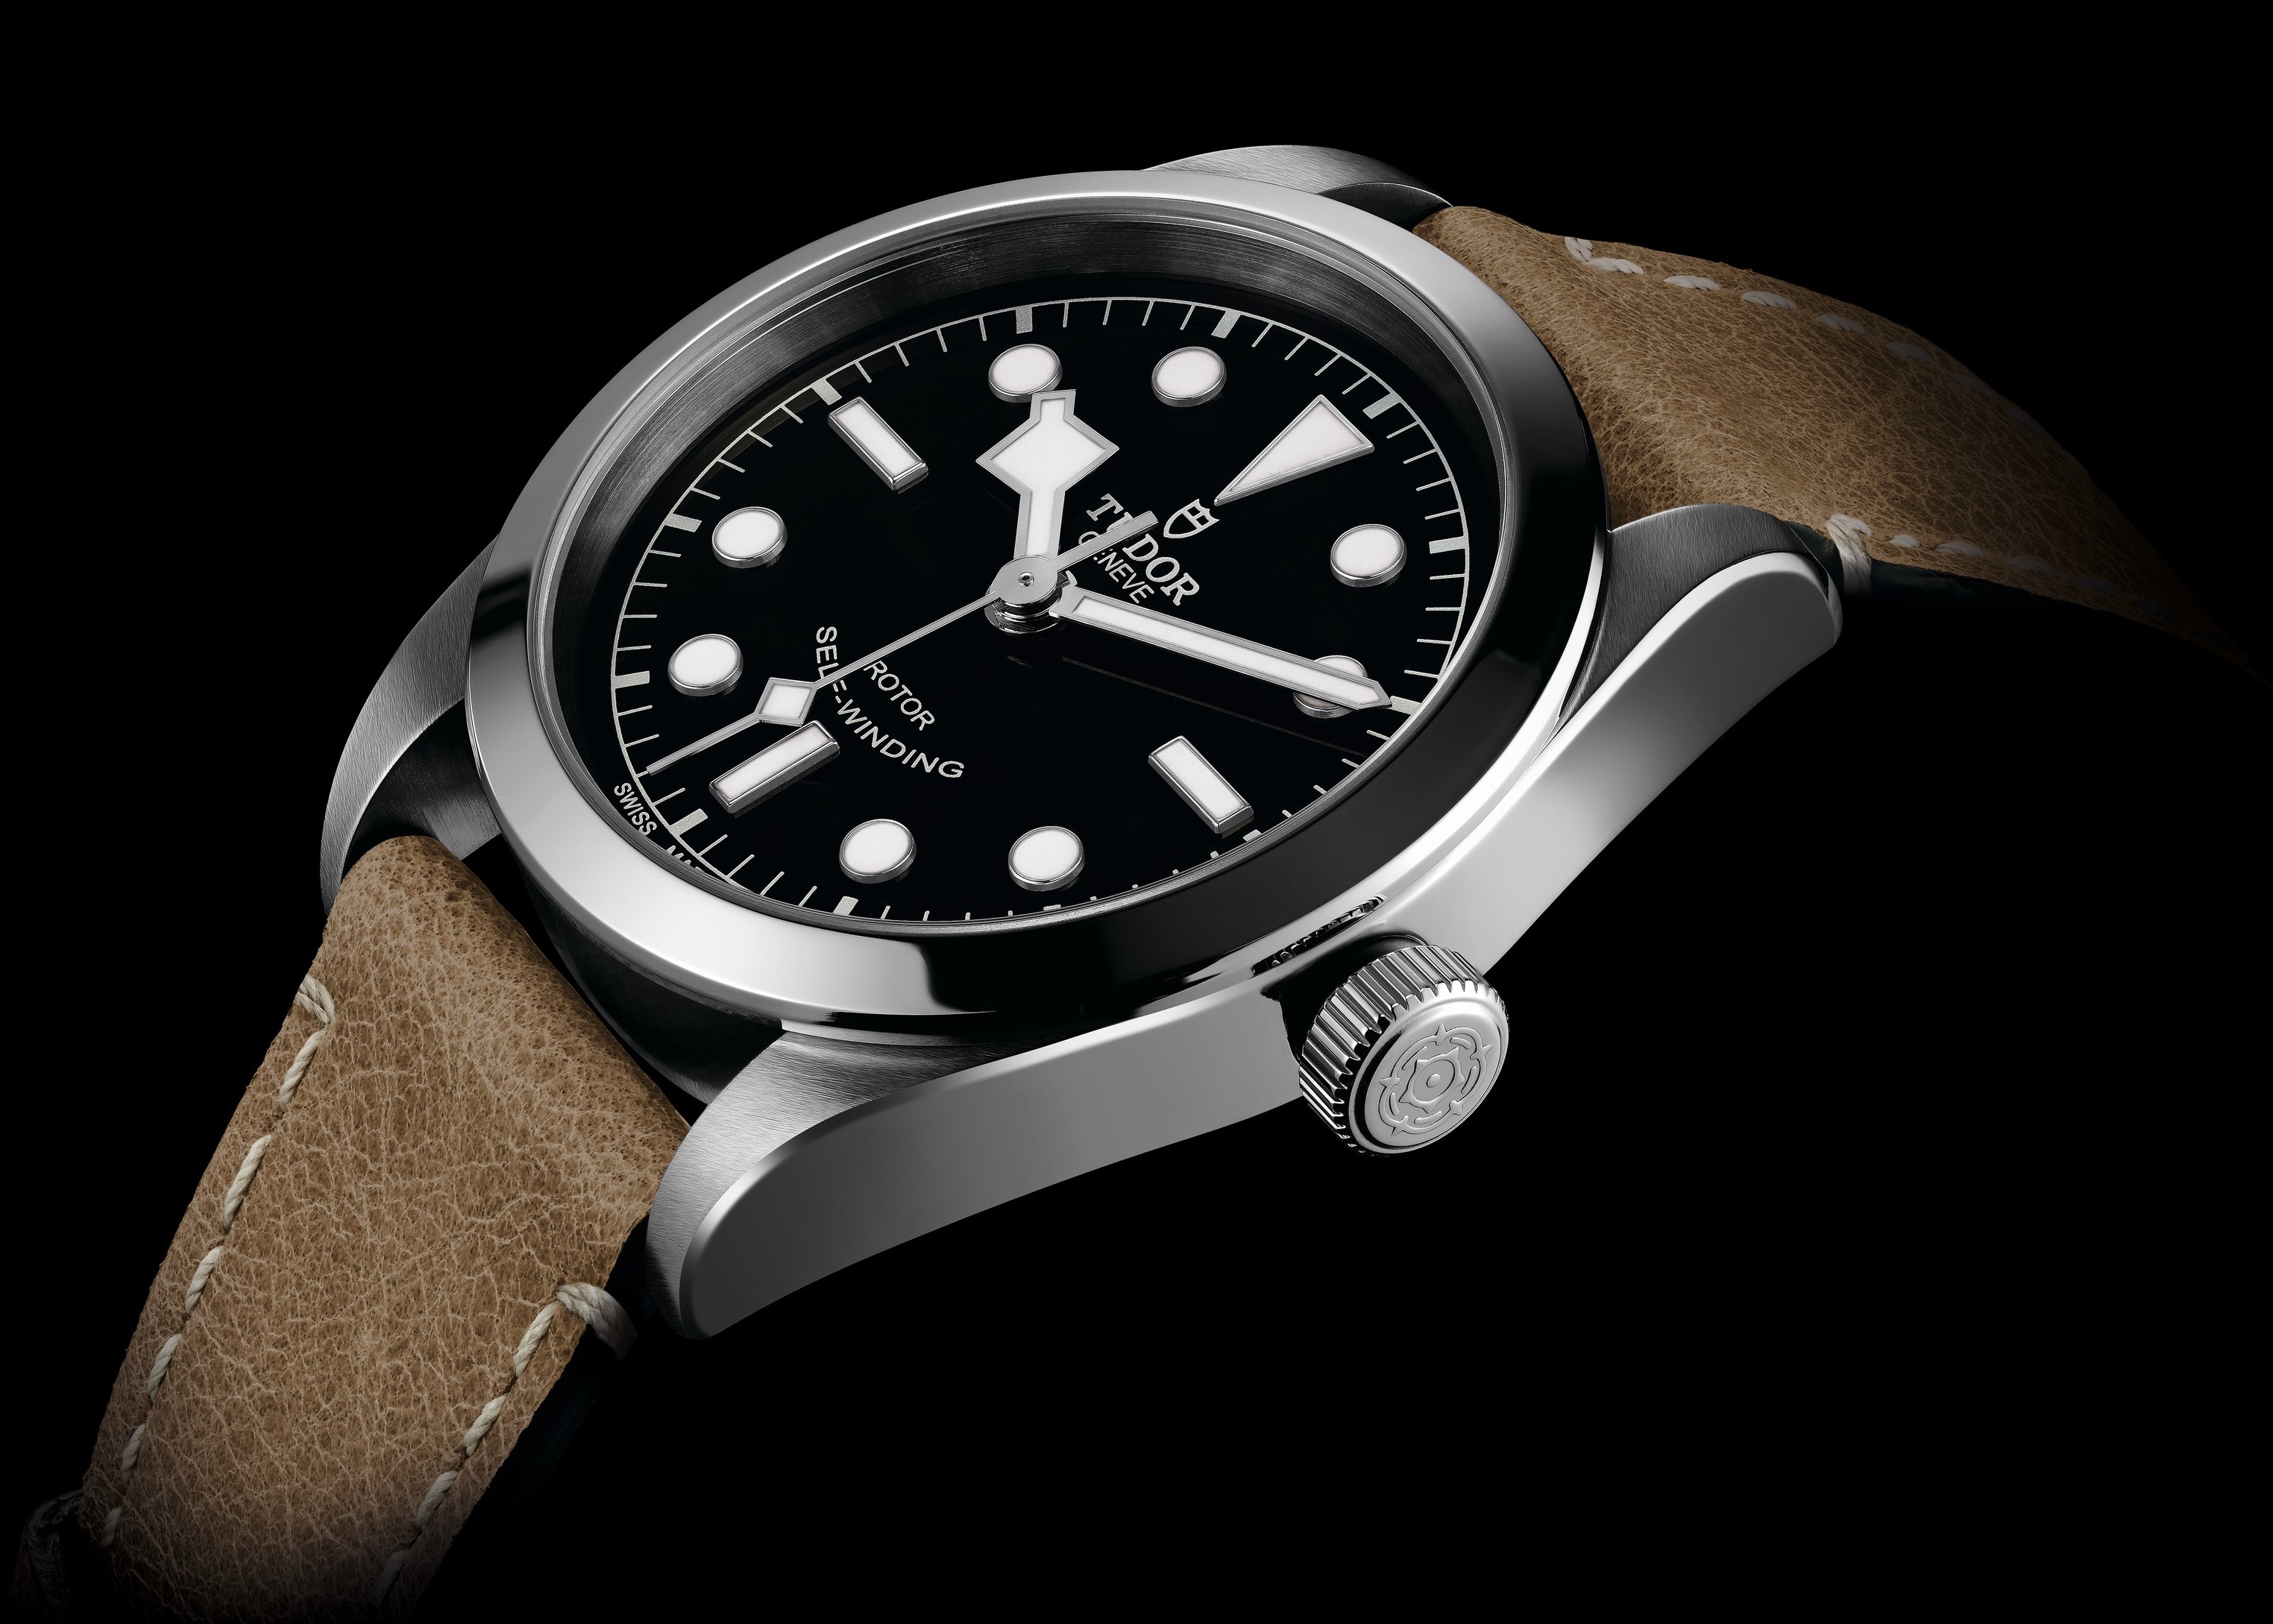 Tudor Black Bay 36 on Leather Strap